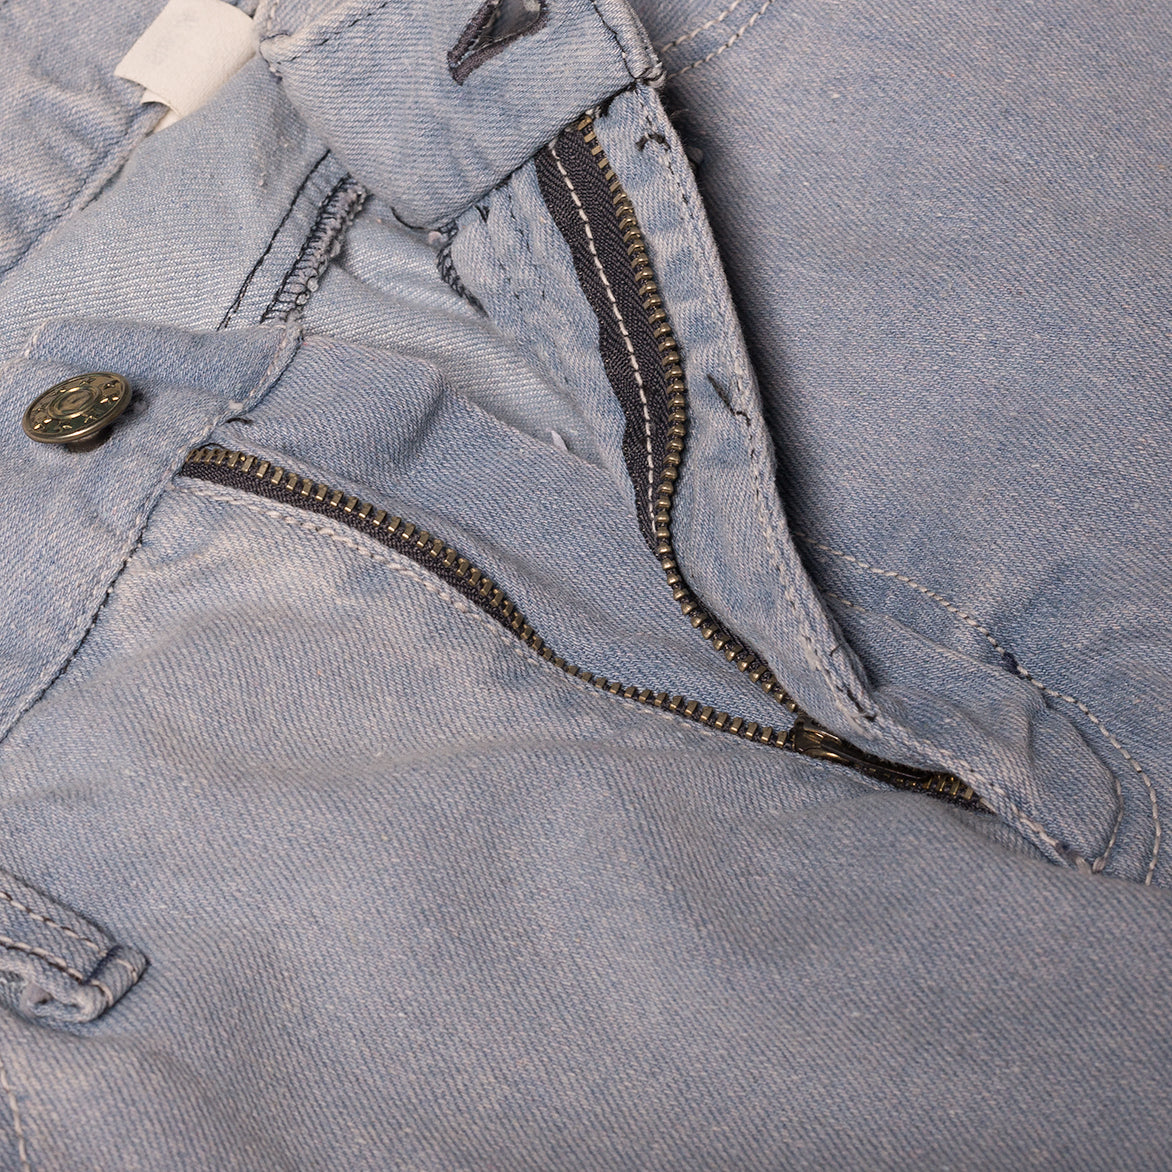 L&H x G+R CROPPED DENIM - STONEWASHED